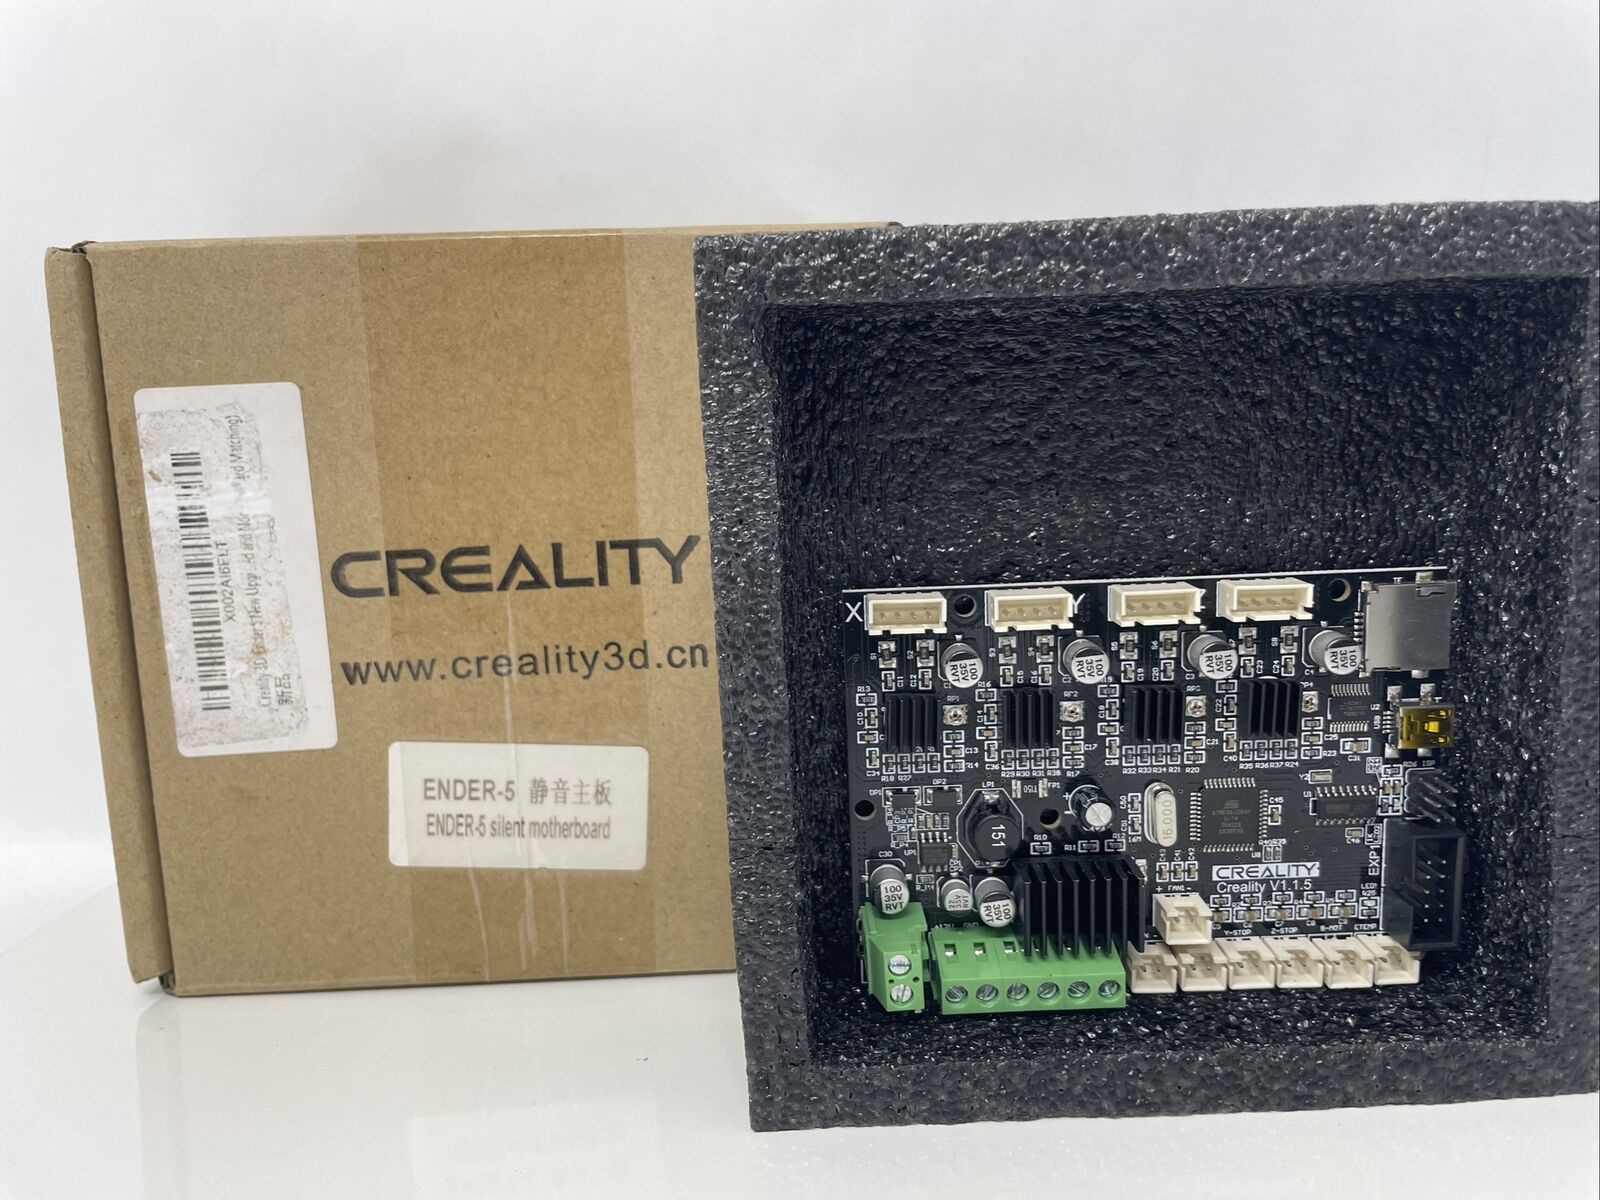 Creality Ender 5 New Upgrade Motherboard Silent Mainboard V1.1.5 with TMC2208 Dr